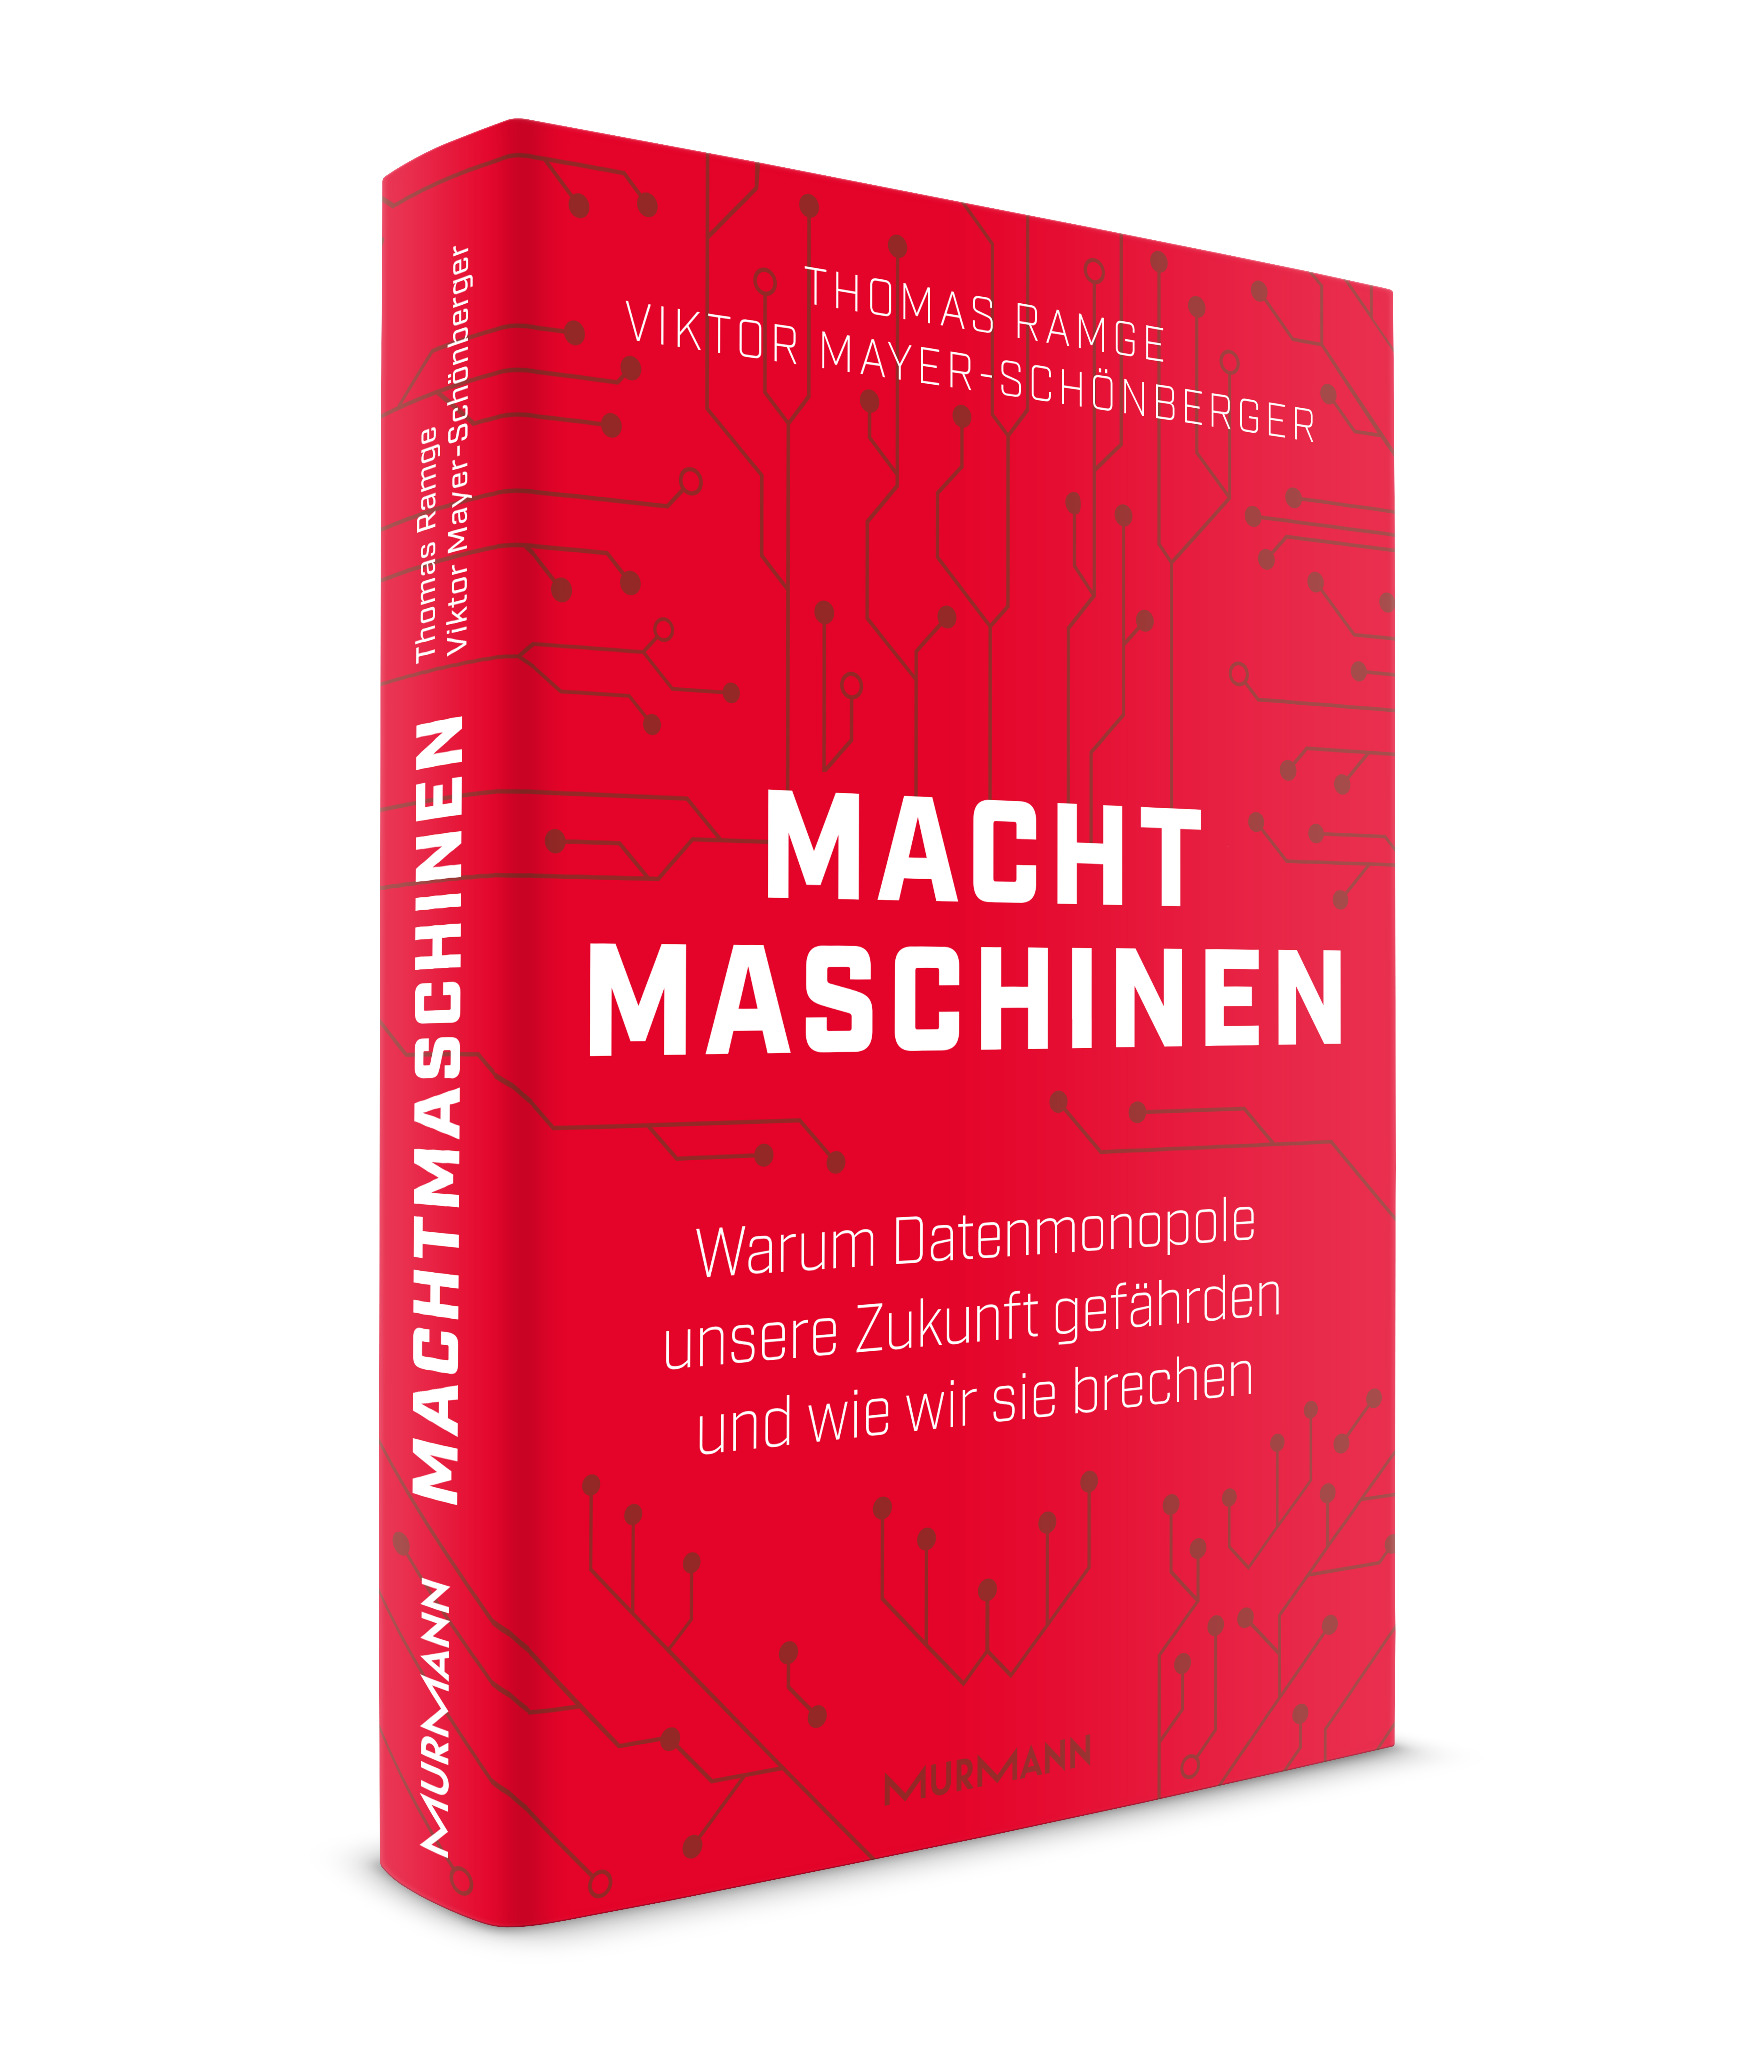 *Machtmaschinen / Thomas Ramge, Viktor Mayer-Schönberger